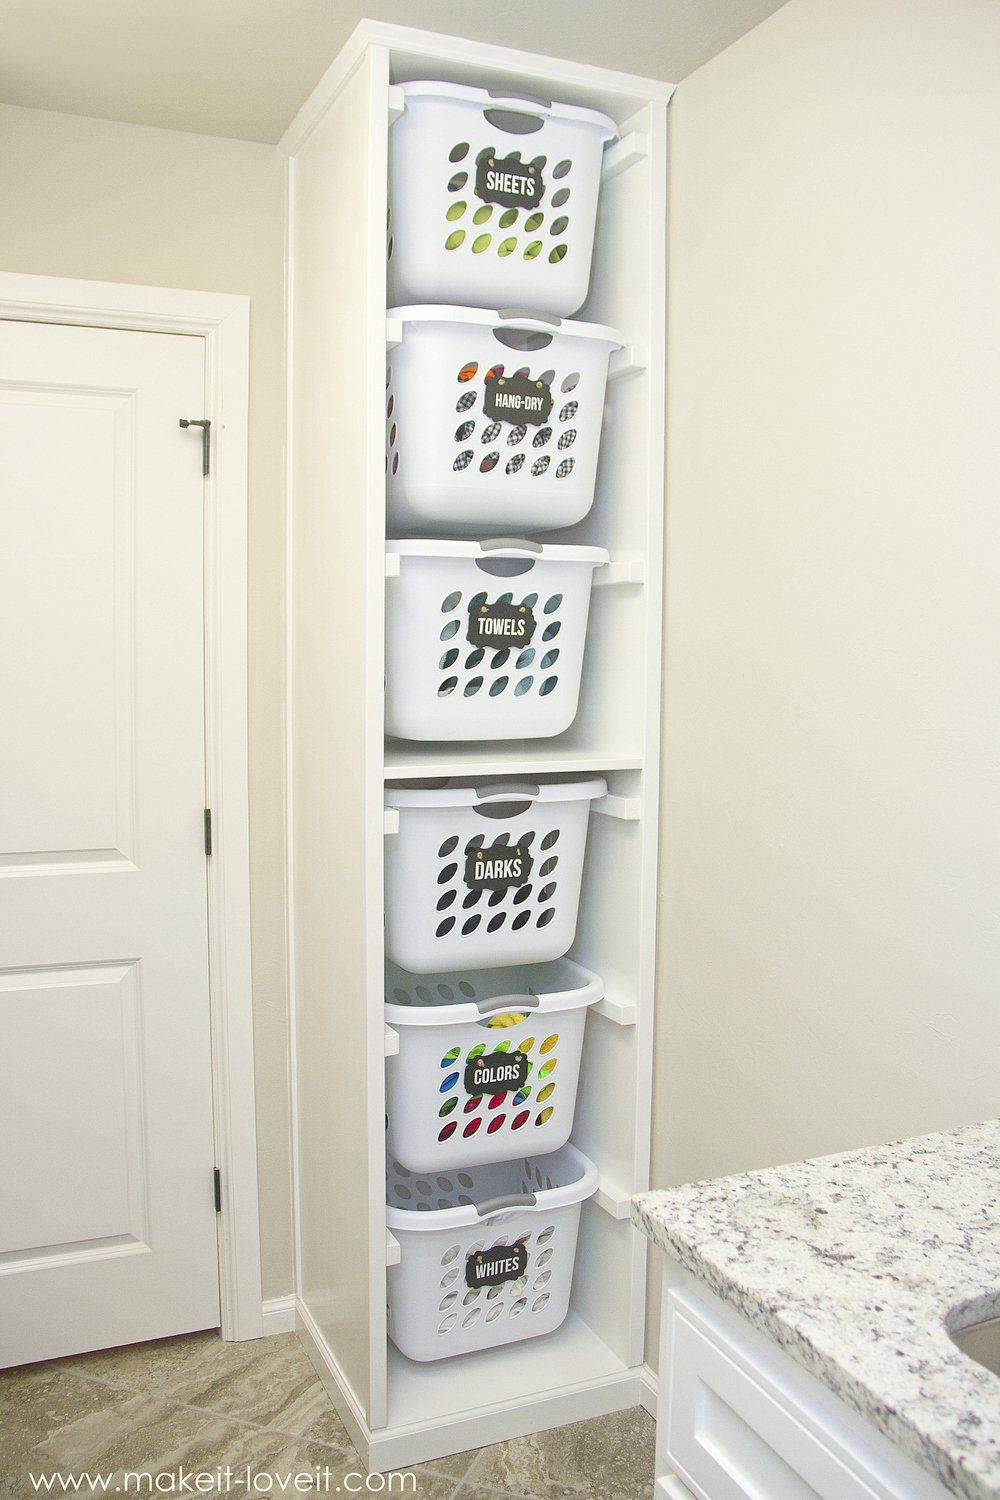 Diy laundry basket organizer built in laundry tubs and diy laundry basket organizer built in make it and love it solutioingenieria